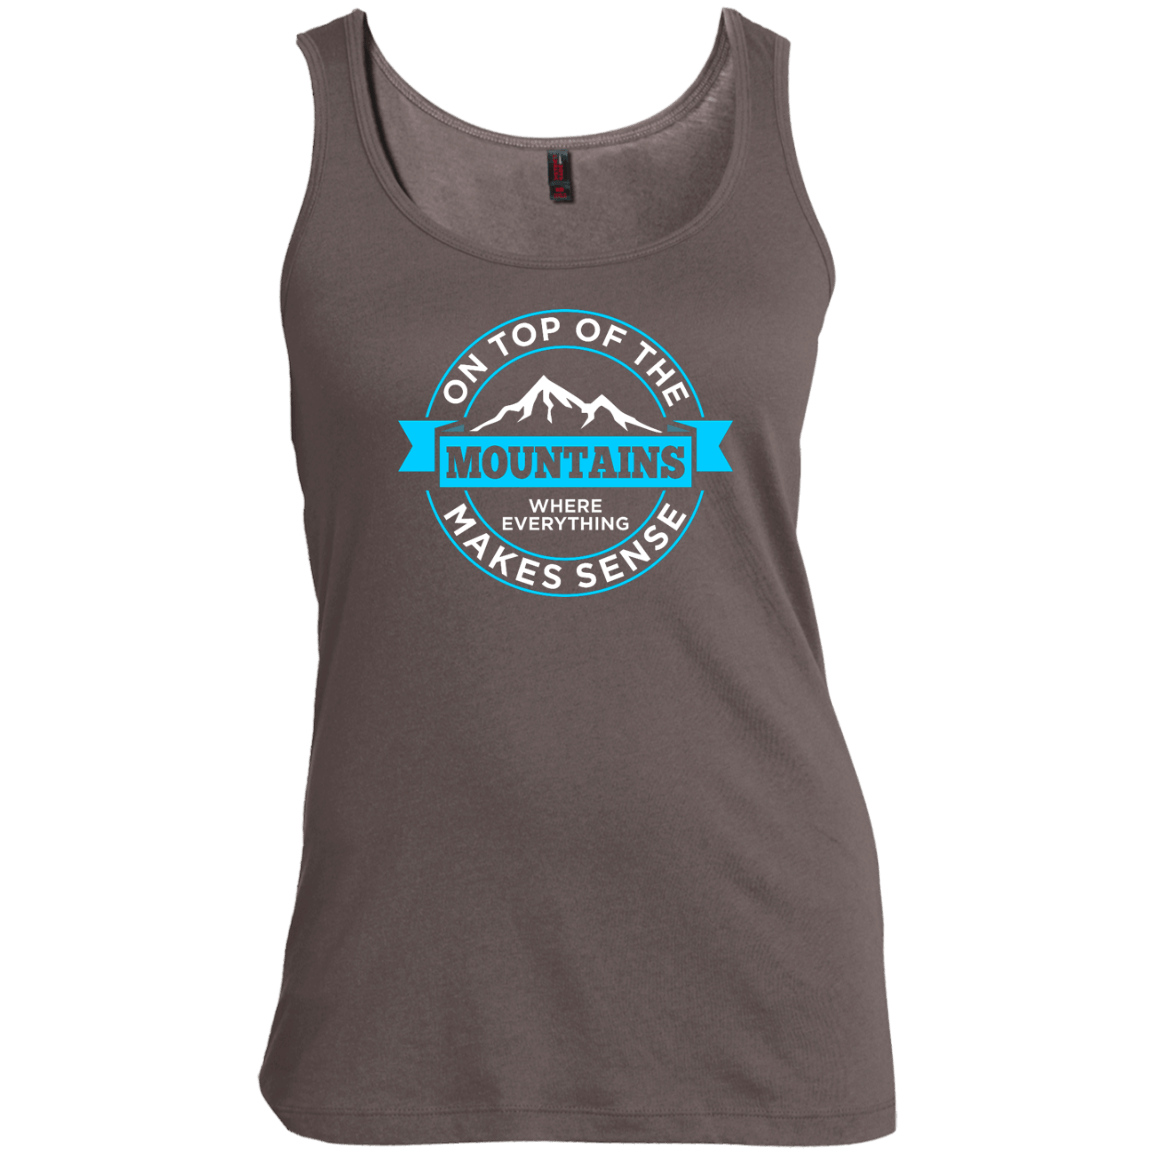 On Top Of The Mountains Where Everything Makes Sense Tank Tops - Powderaddicts